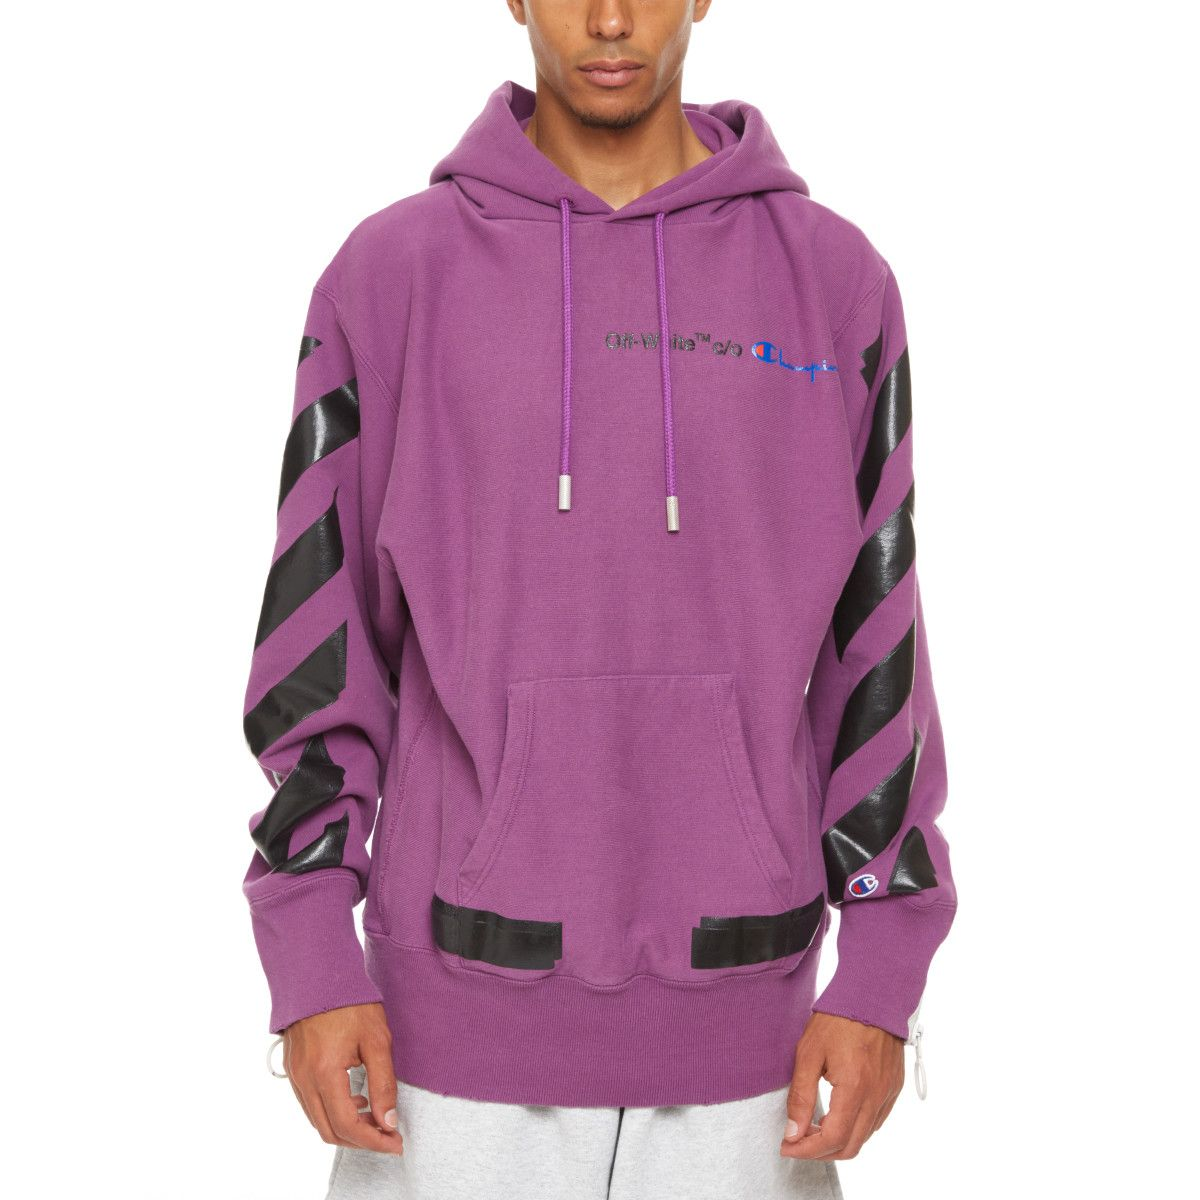 Champion Hoodie From The S S2018 Off White C O Virgil Abloh Collection In Violet White Champion Hoodie Champion Hoodie Hoodies